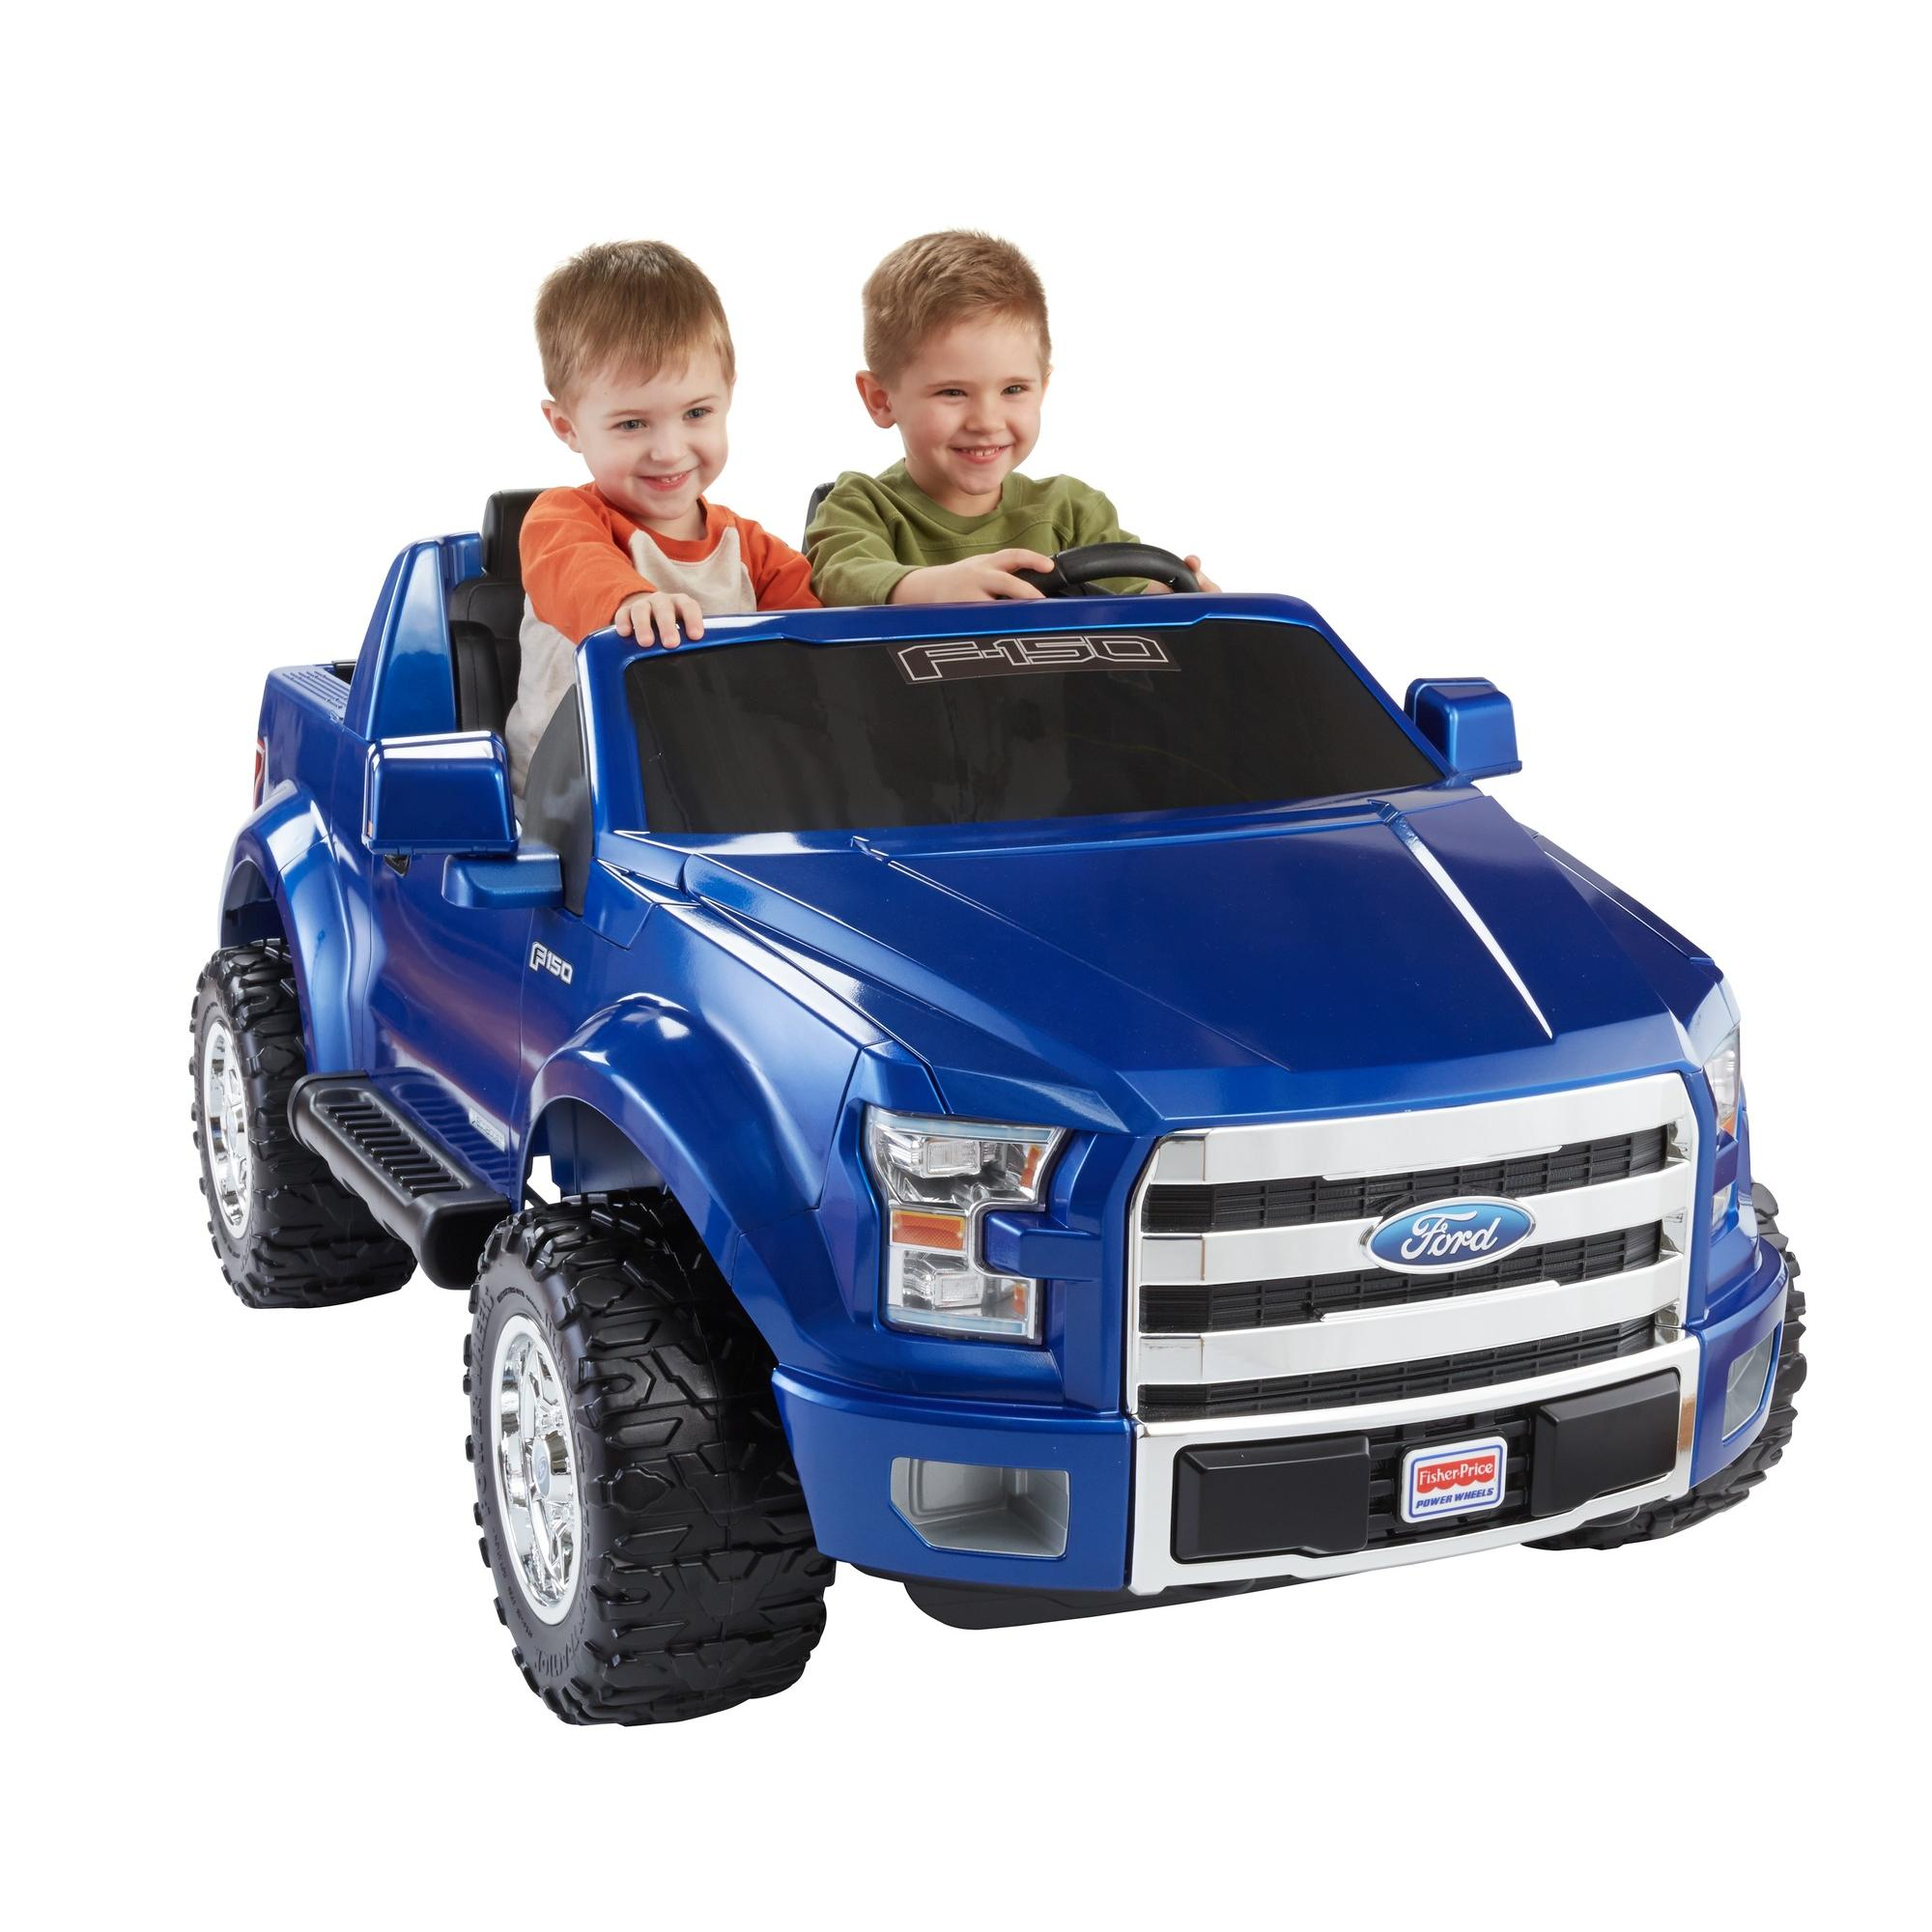 Power Wheels Ford F-150 12-Volt Battery-Powered Ride-On